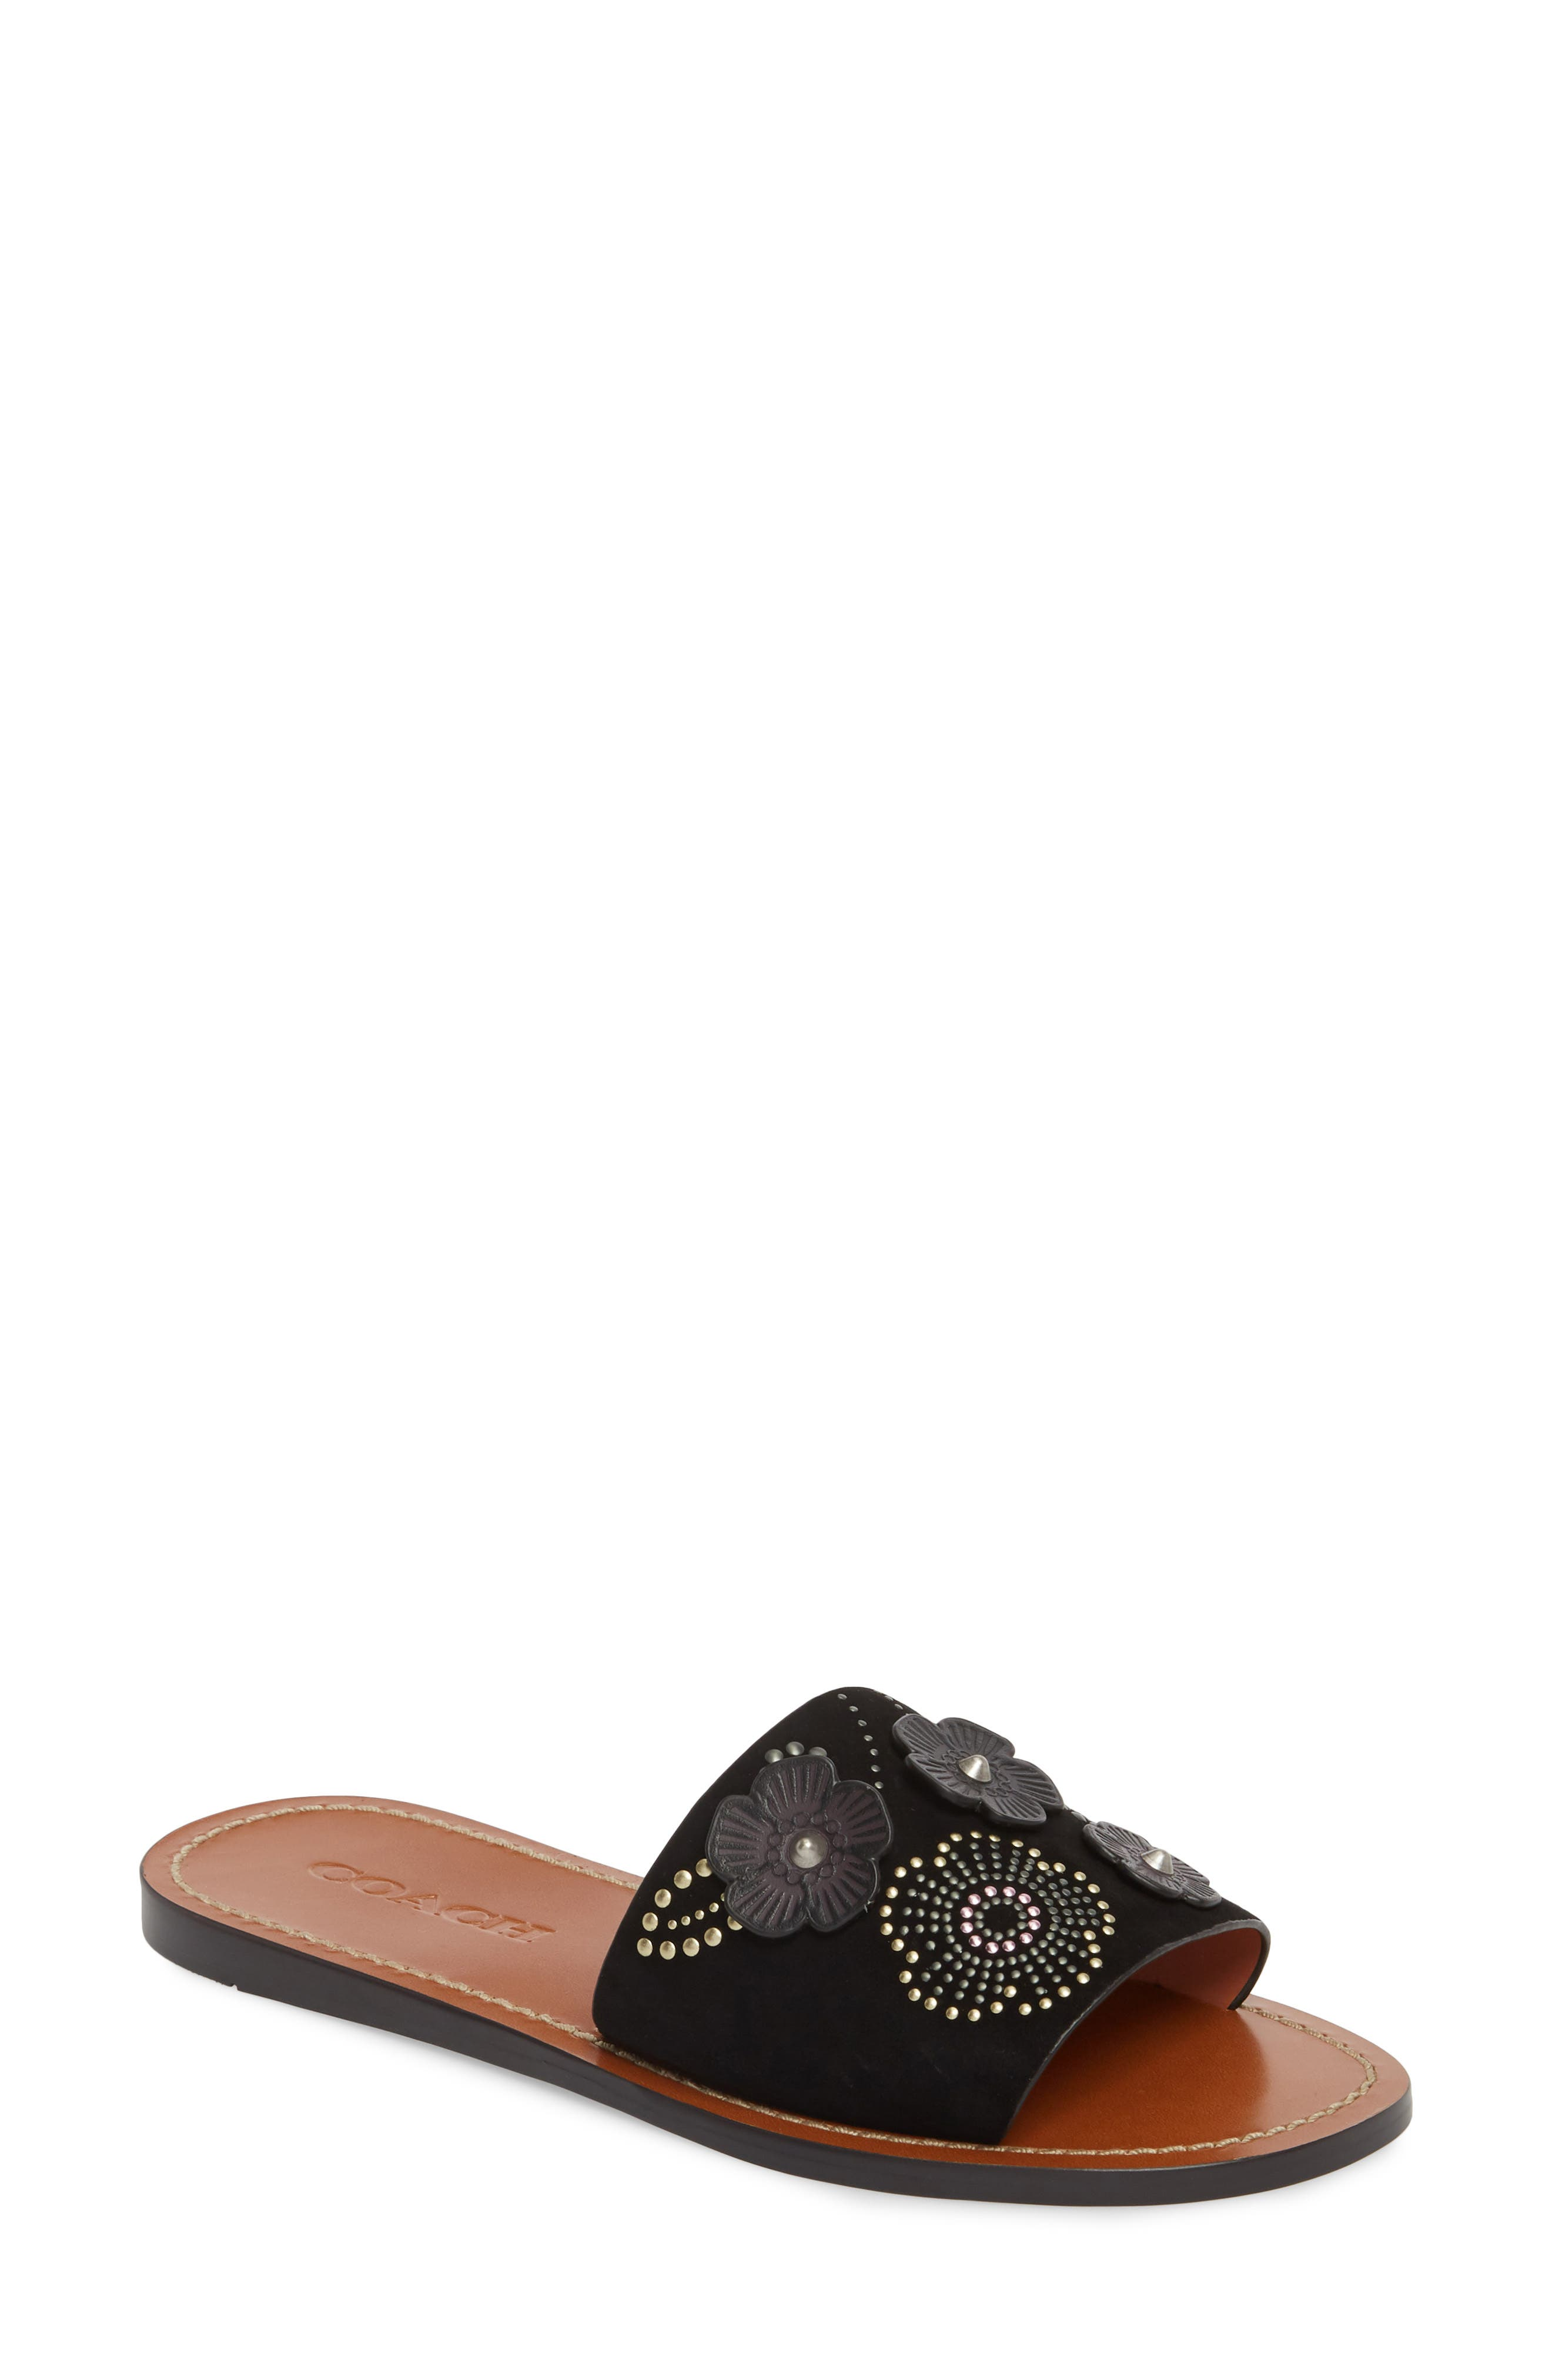 COACH Tea Rose Slide Sandal (Women)